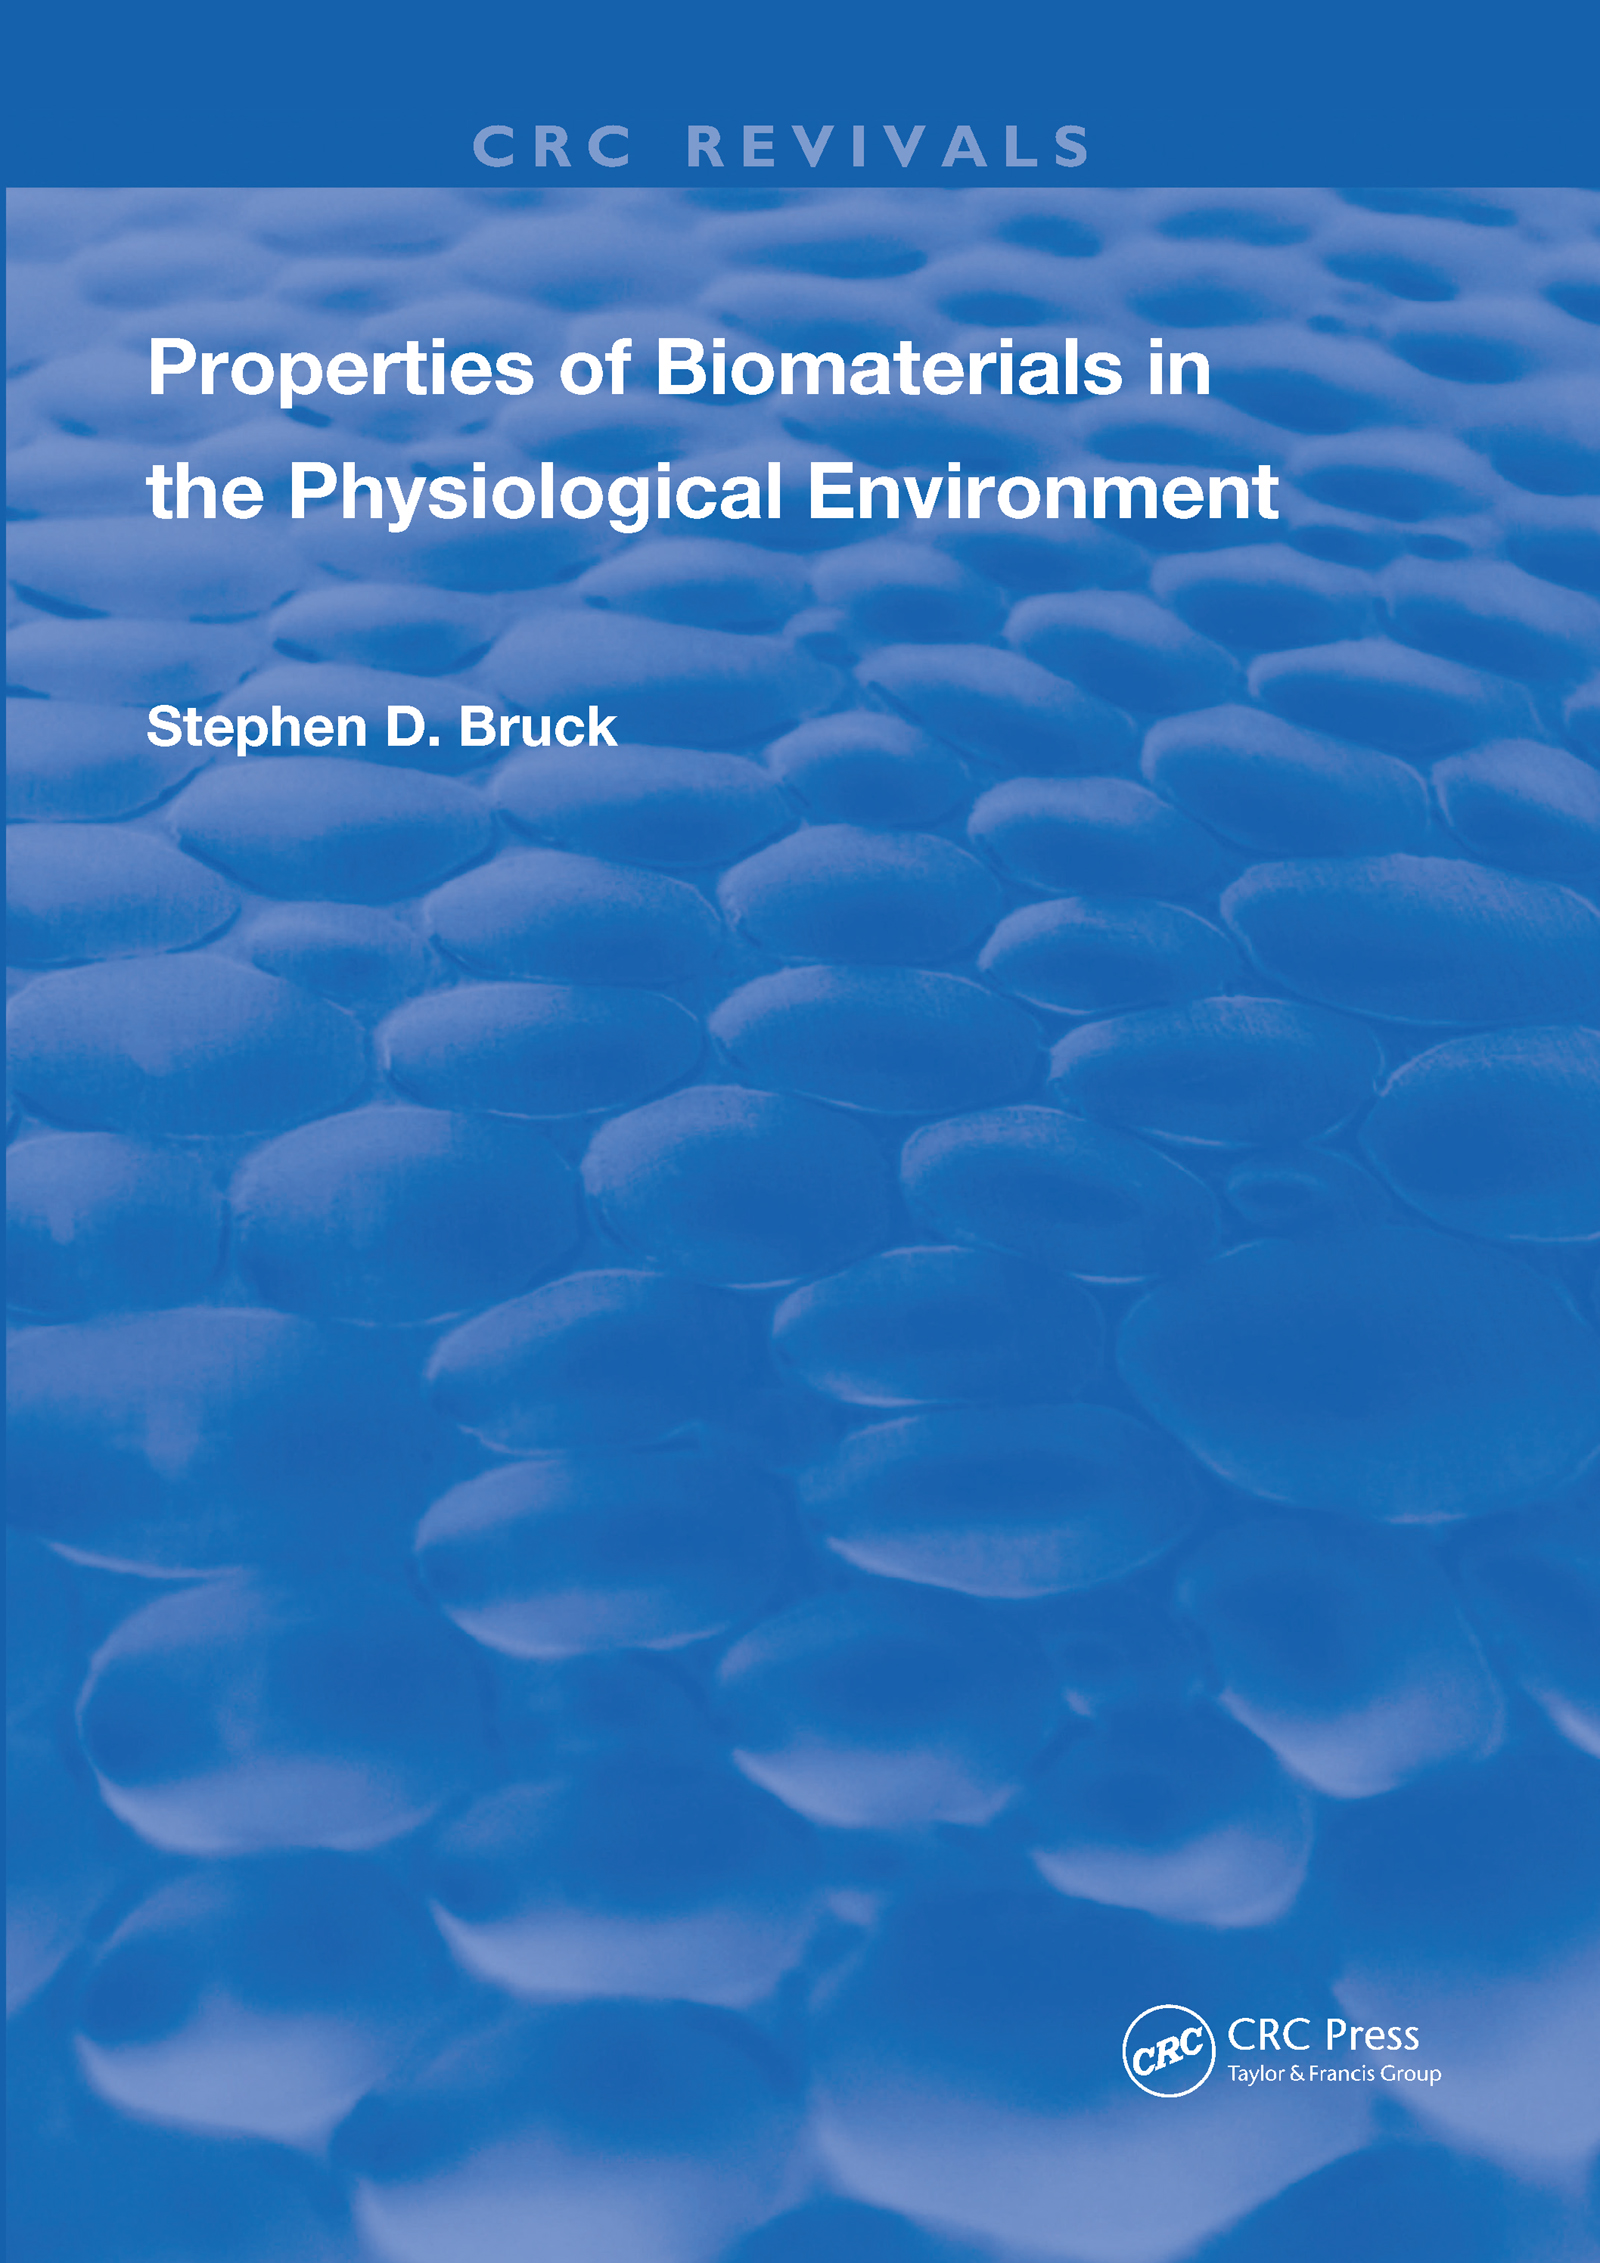 Properties of Biomaterials in the Physiological Environment